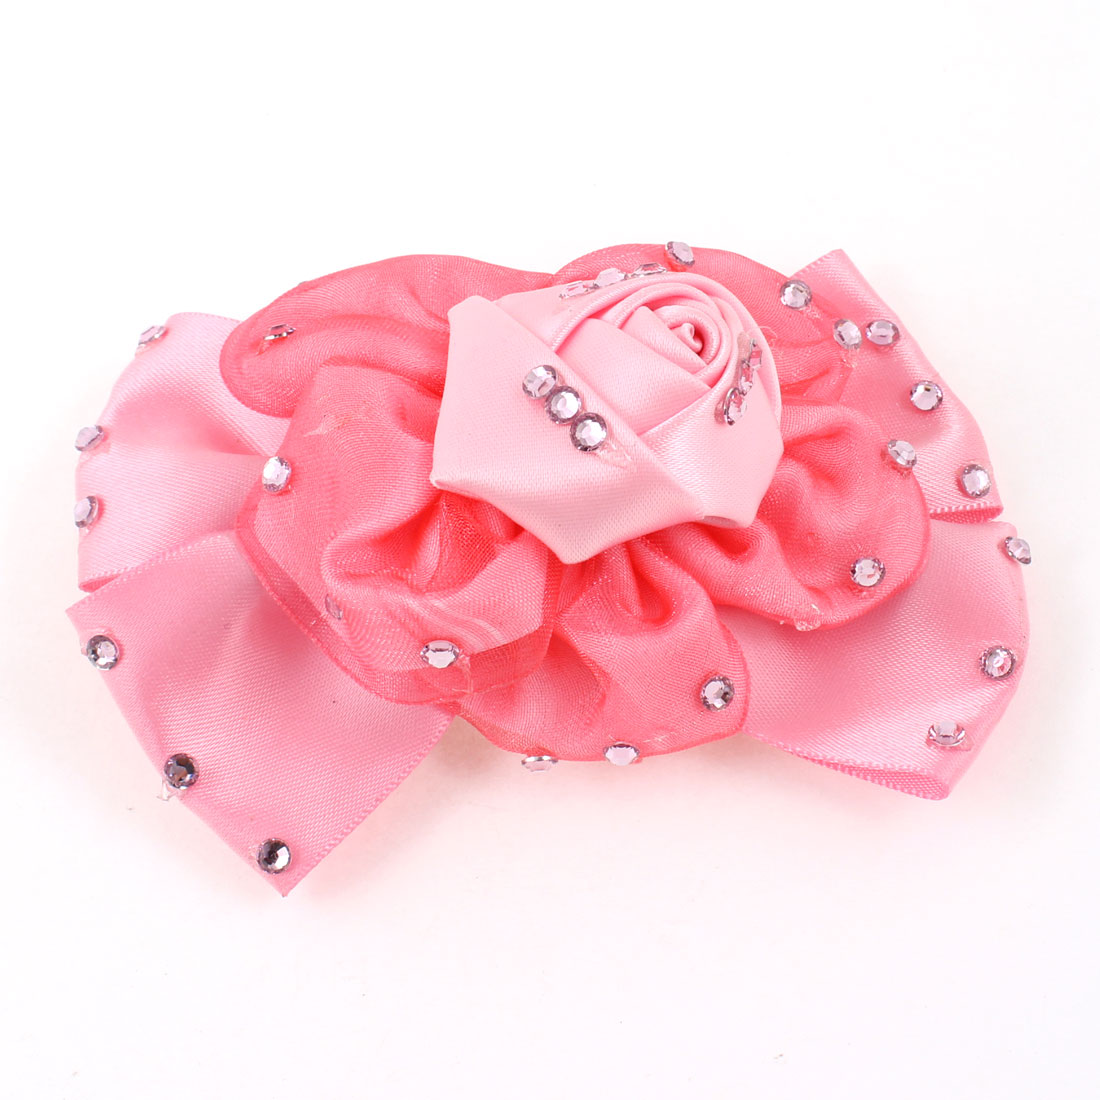 Shiny Rhinestone Decor Flower Designed Metal Alligator Hair Clip Pink for Lady